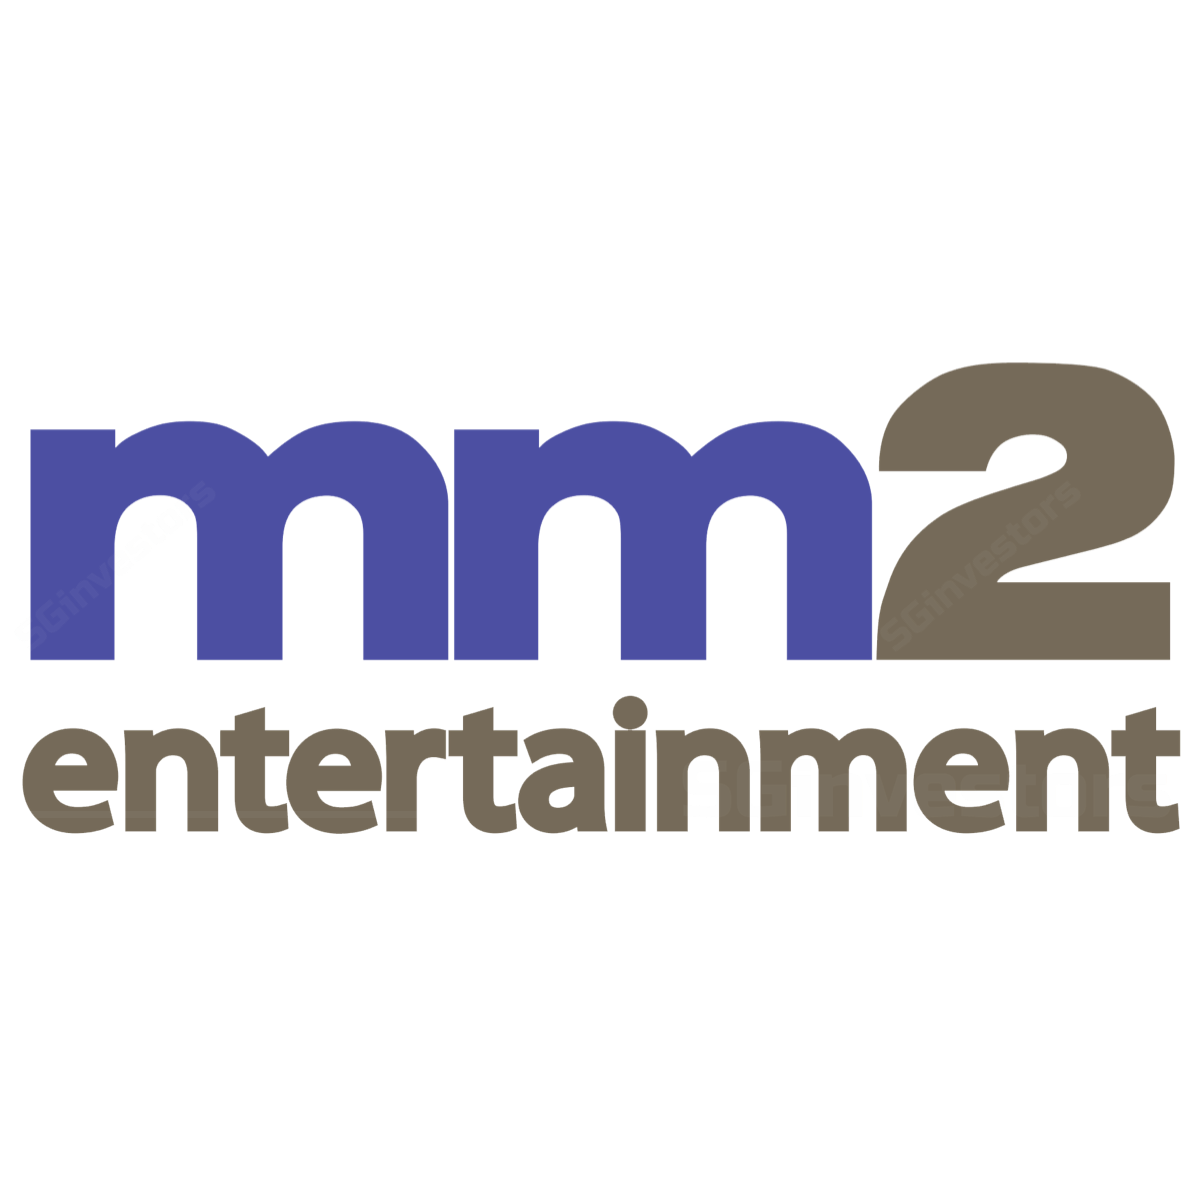 Mm2 Asia - CIMB Research 2017-08-15: 1QFY18 Casting Spotlight Back On Core Production